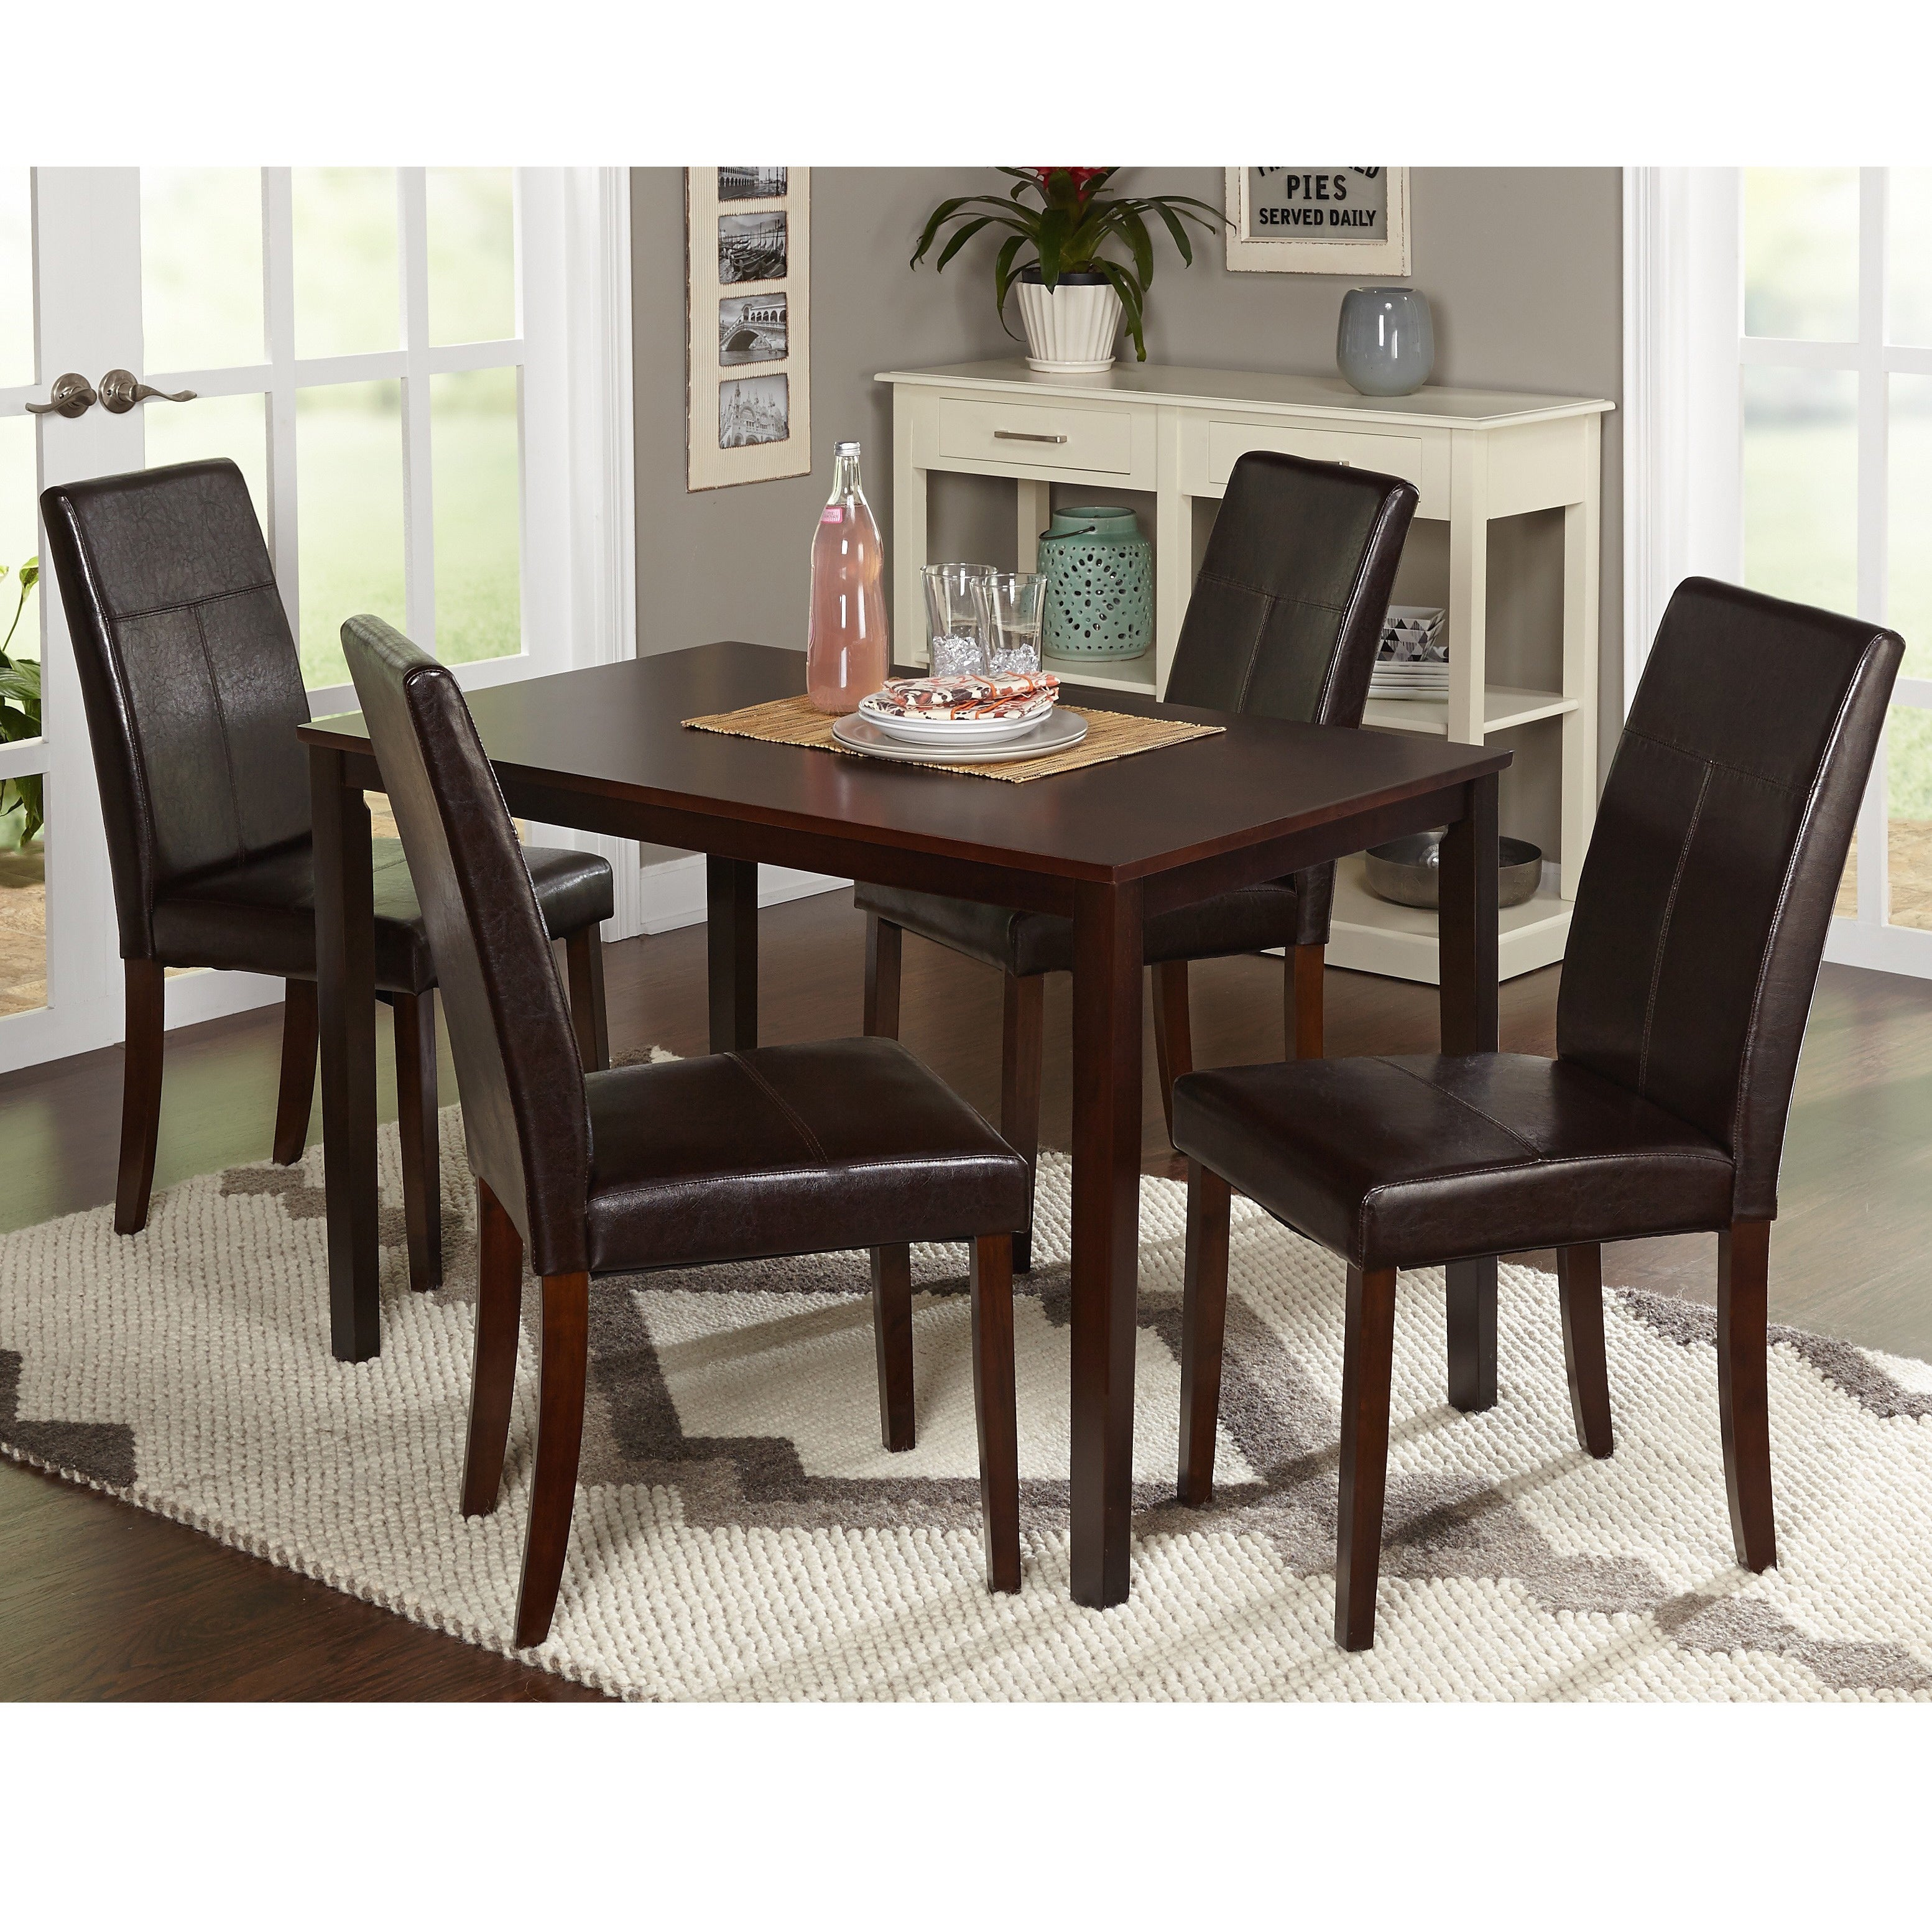 Target Marketing Systems Bettega 5 Piece Dining Table Set